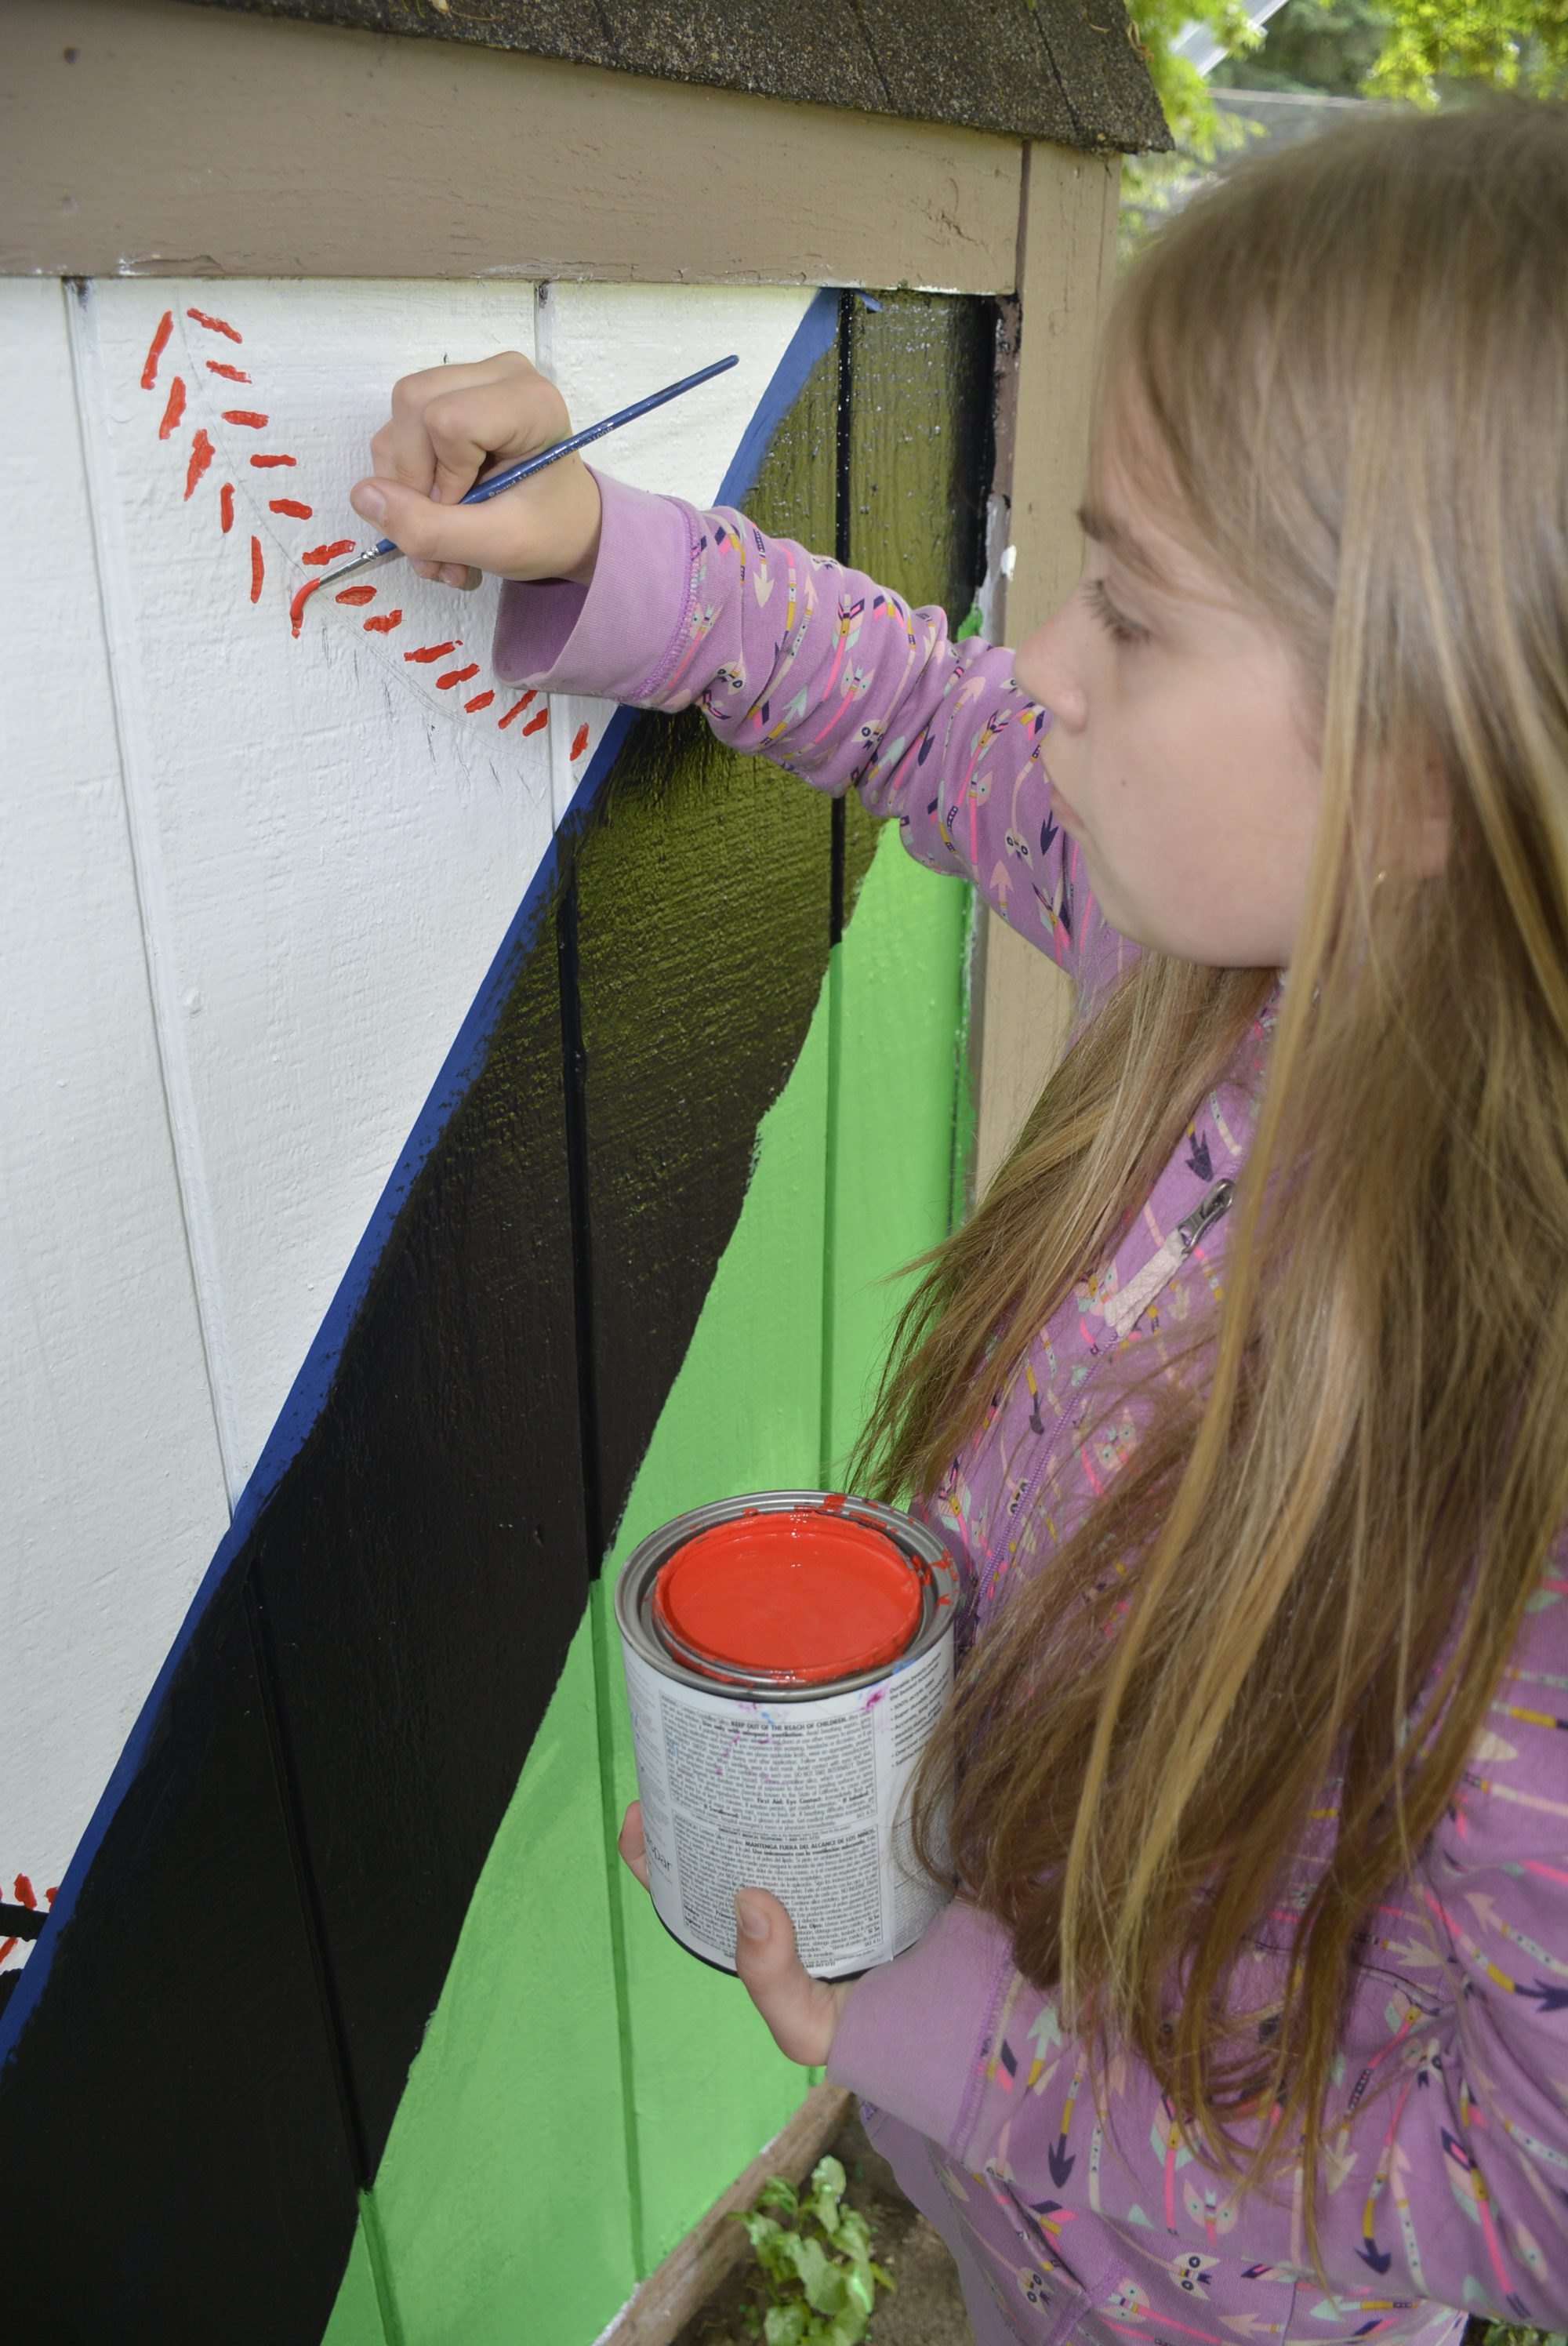 JMS student adding detail to Hathaway park mural